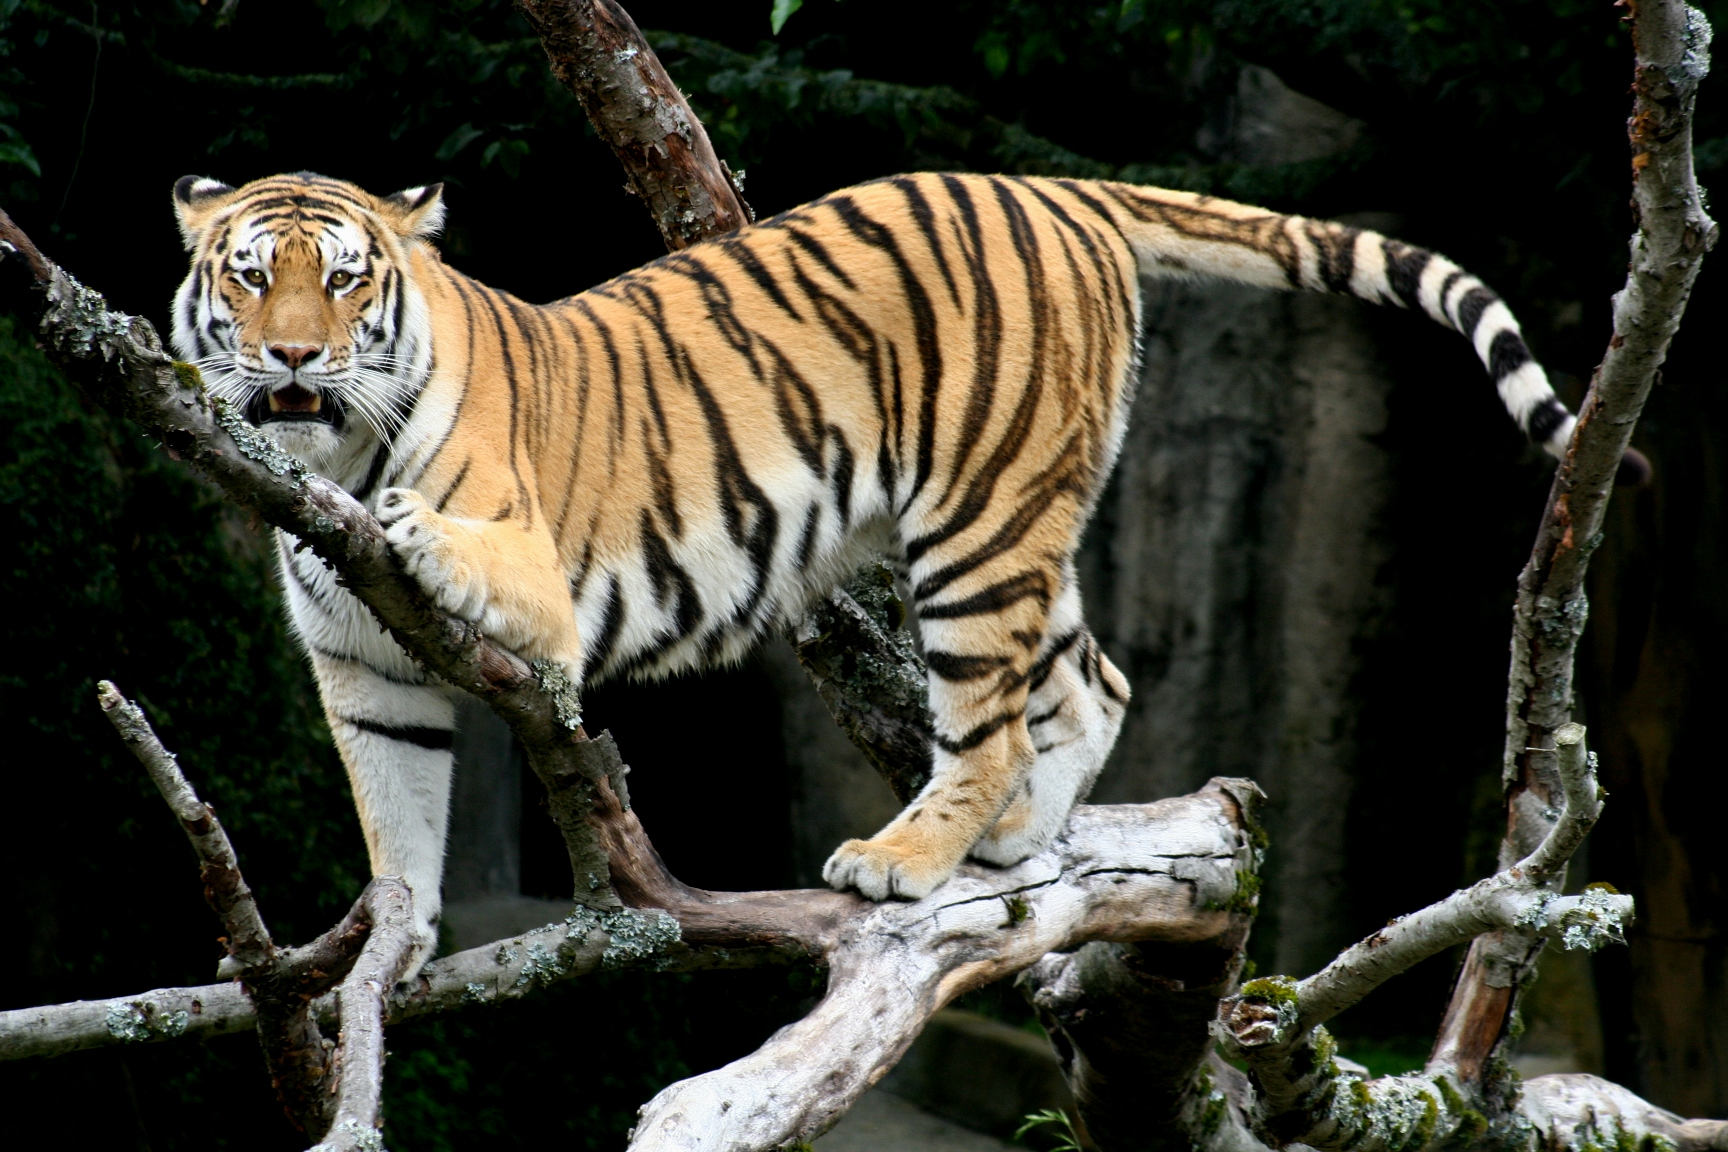 http://upload.wikimedia.org/wikipedia/commons/c/c6/Siberian_Tiger_sf.jpg